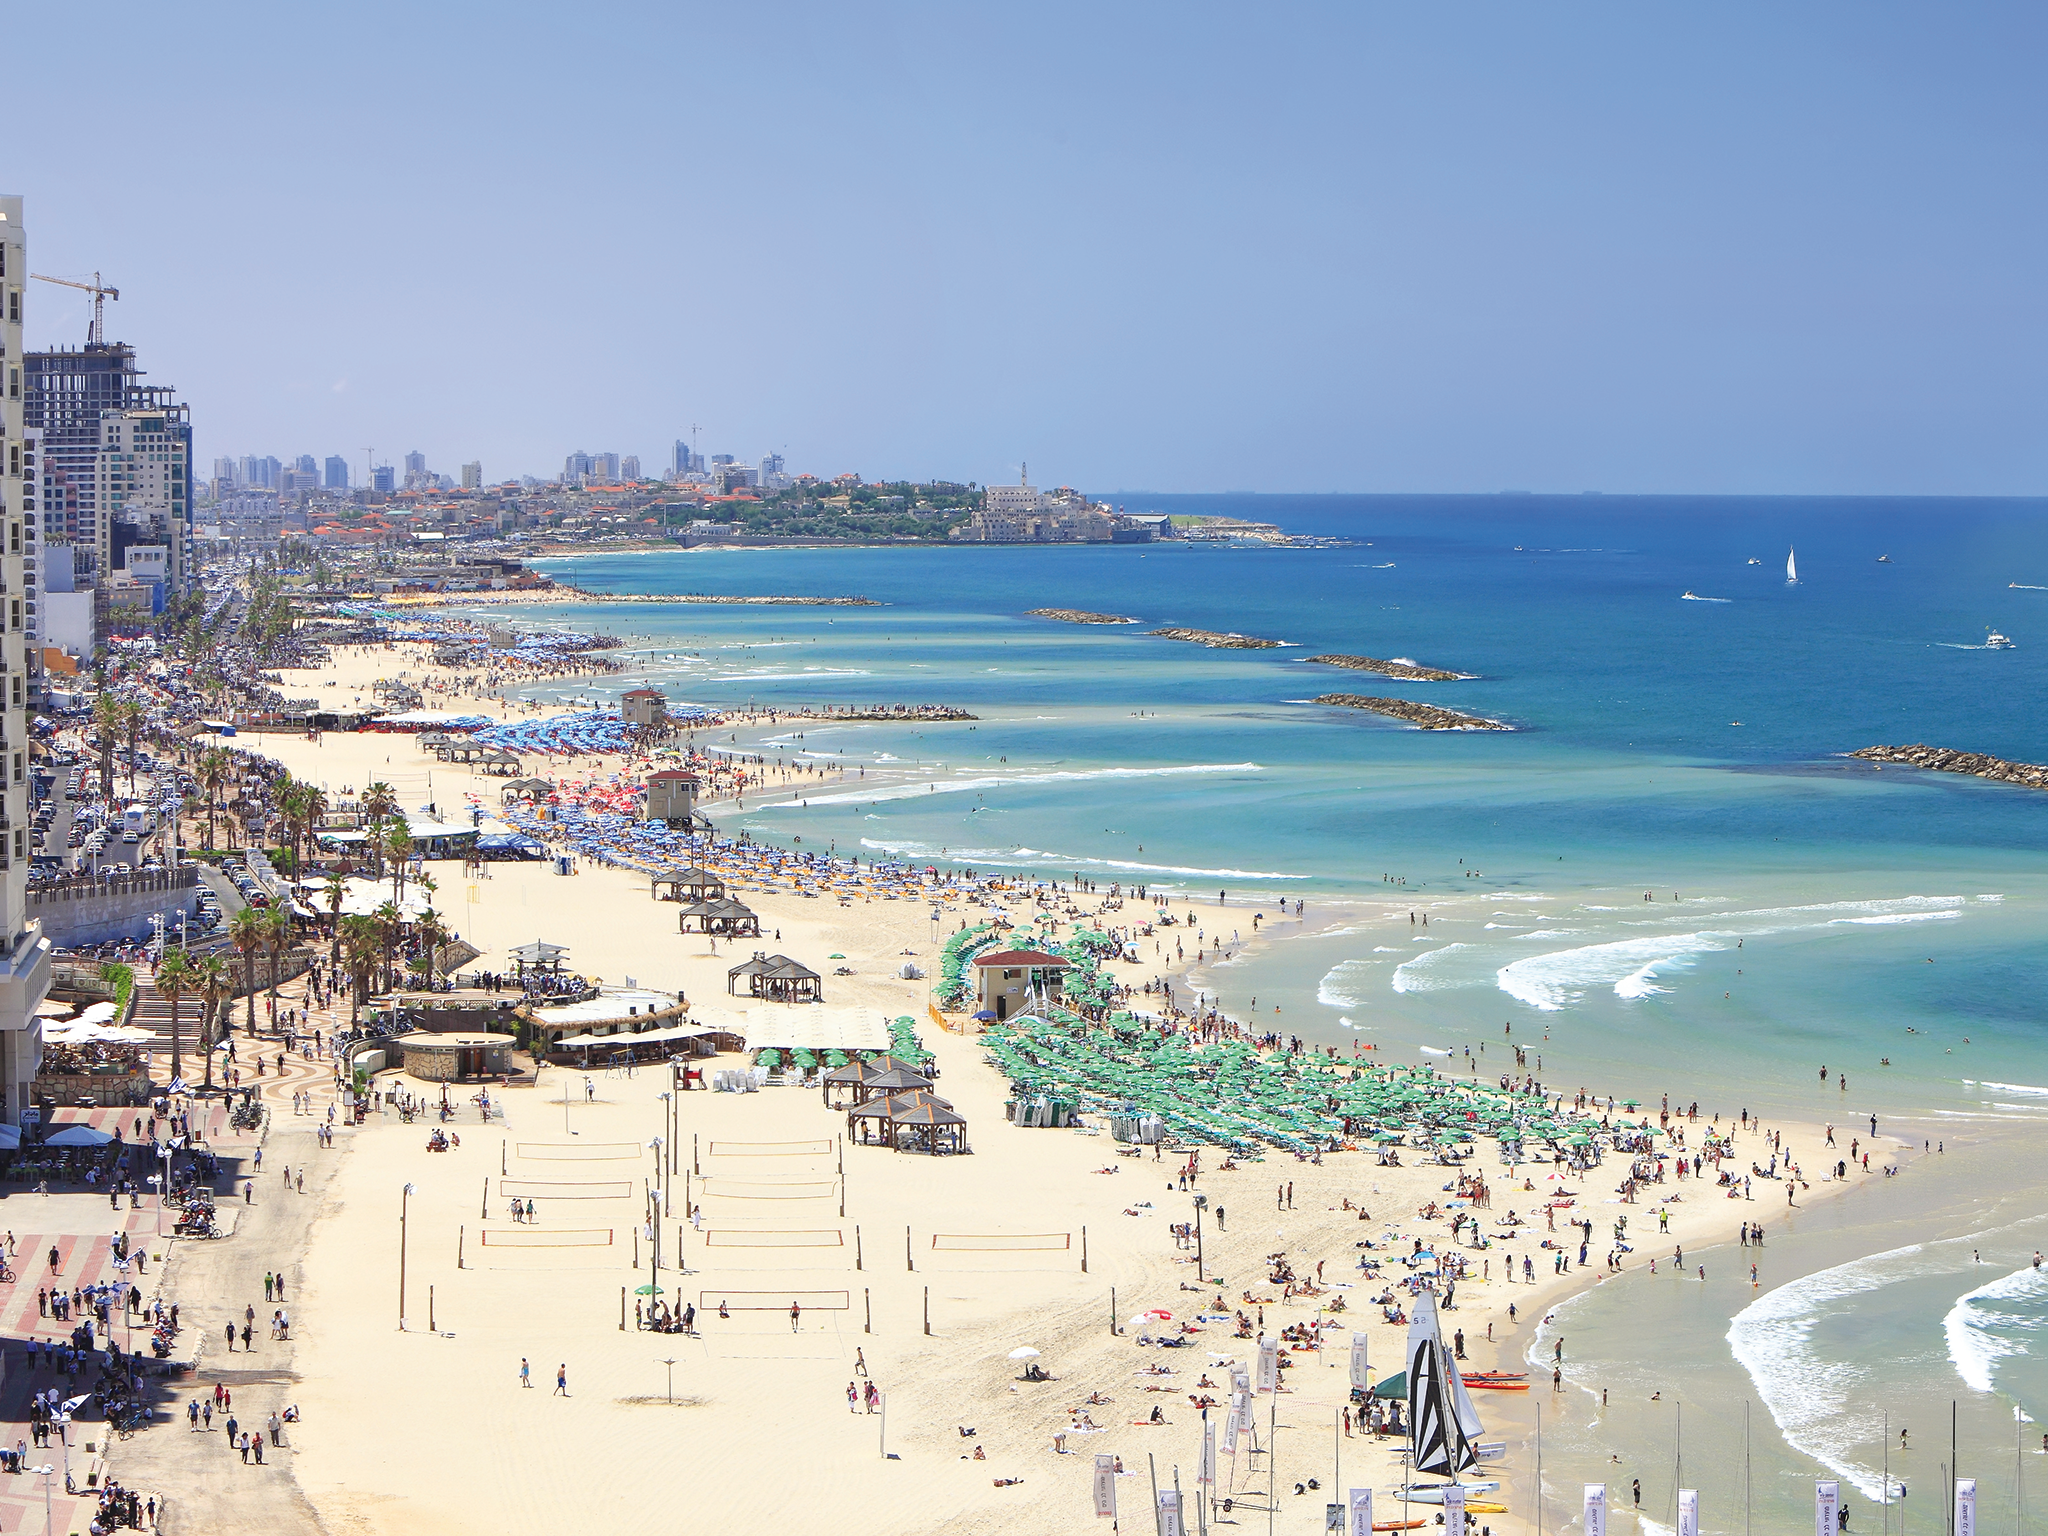 The best beaches in Tel Aviv from Gordon to Jerusalem beach